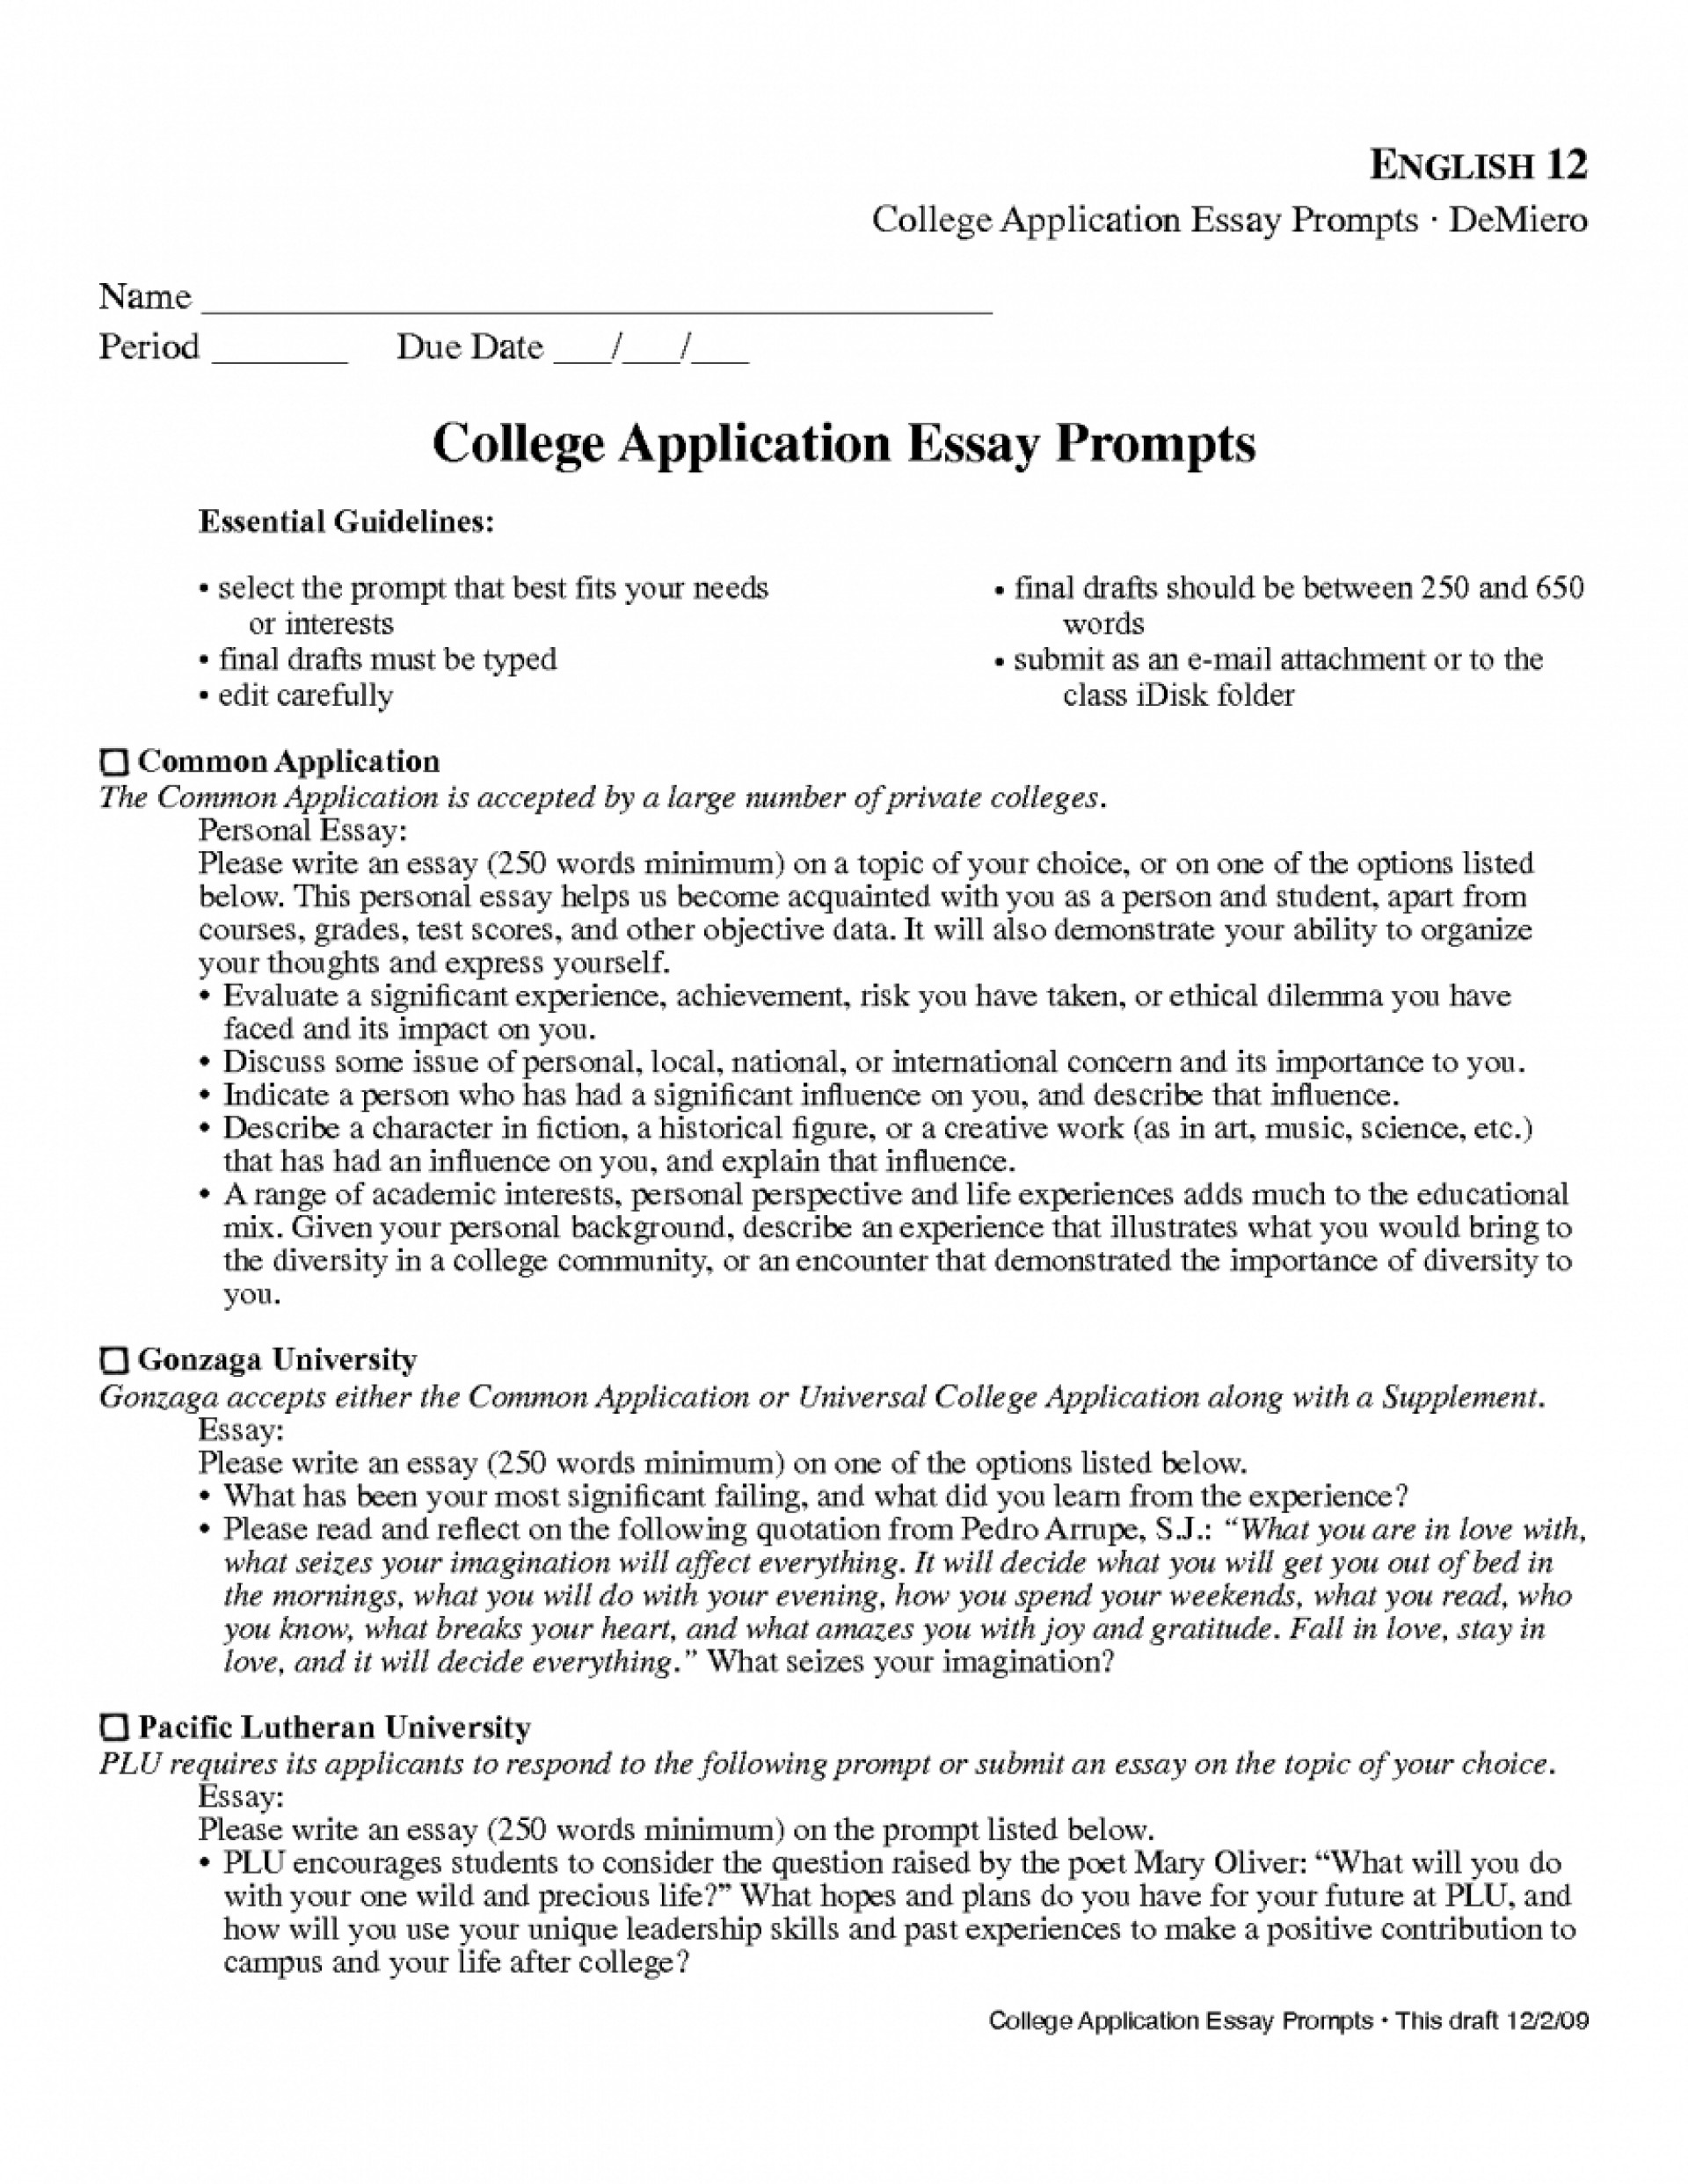 001 College Essay Prompt Prompts Writings And Essayss Of Application Questions Guve Securid Co With Rega Sample Stirring Samples Best 2017 Uc 1920